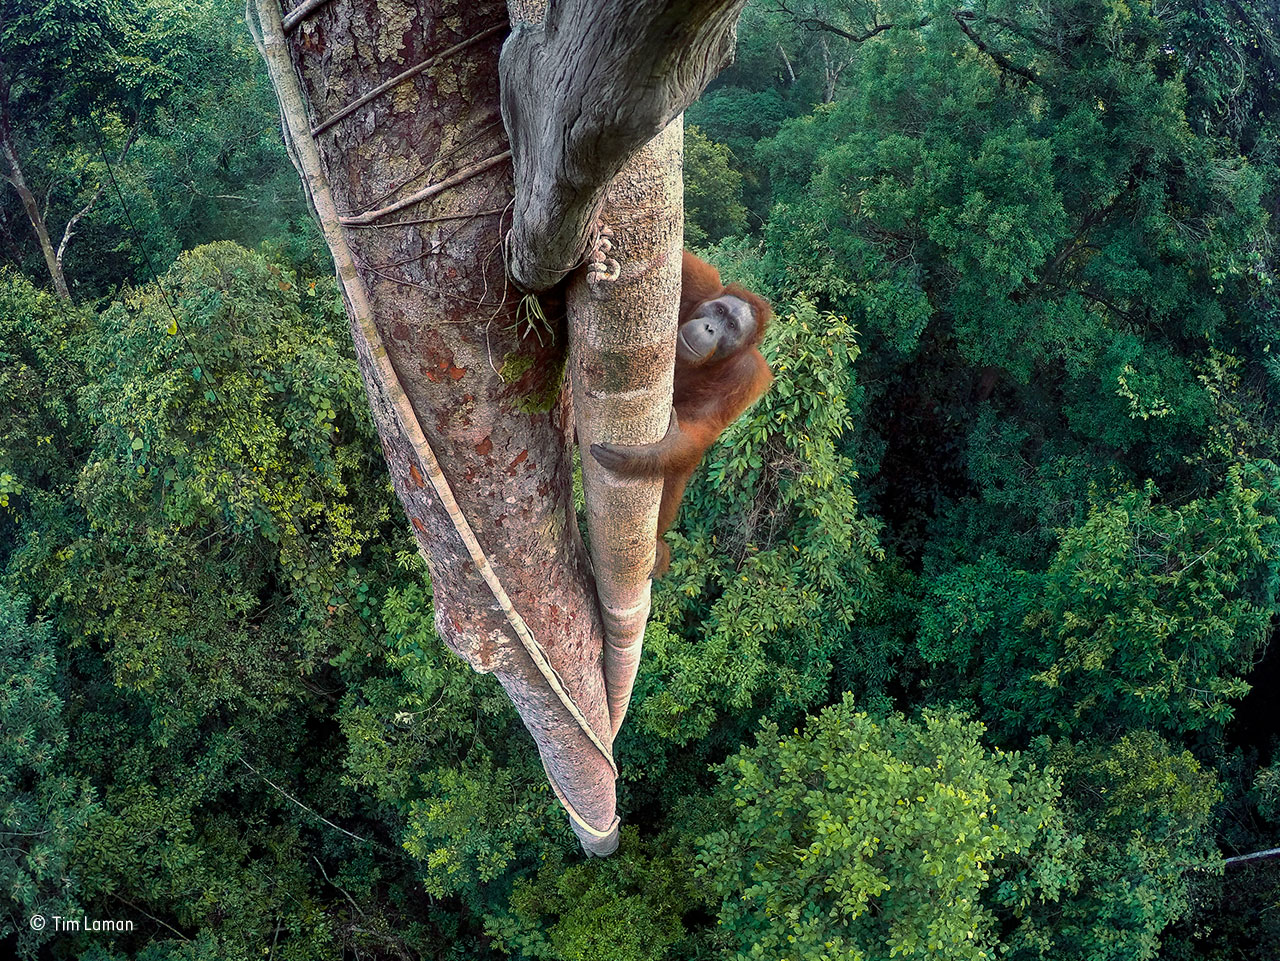 Tim Laman, Entwined lives. Wildlife Photographer of the Year 2016. Winner